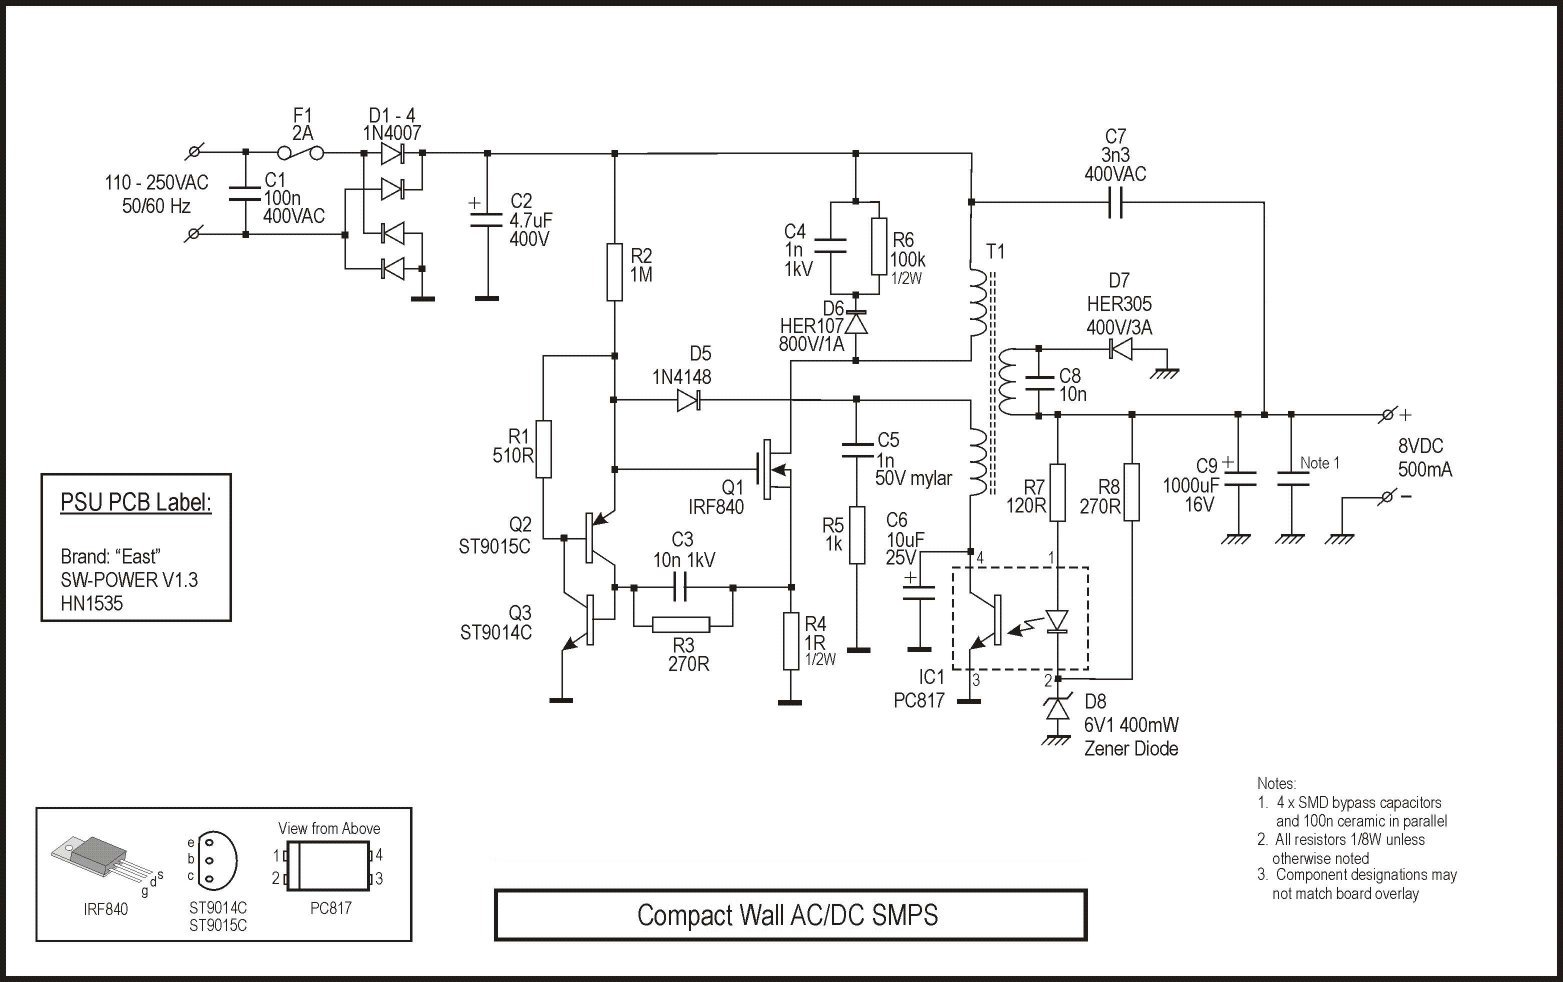 Caravan Wiring Diagram For Reversing Camera on cctv power supply wiring diagram